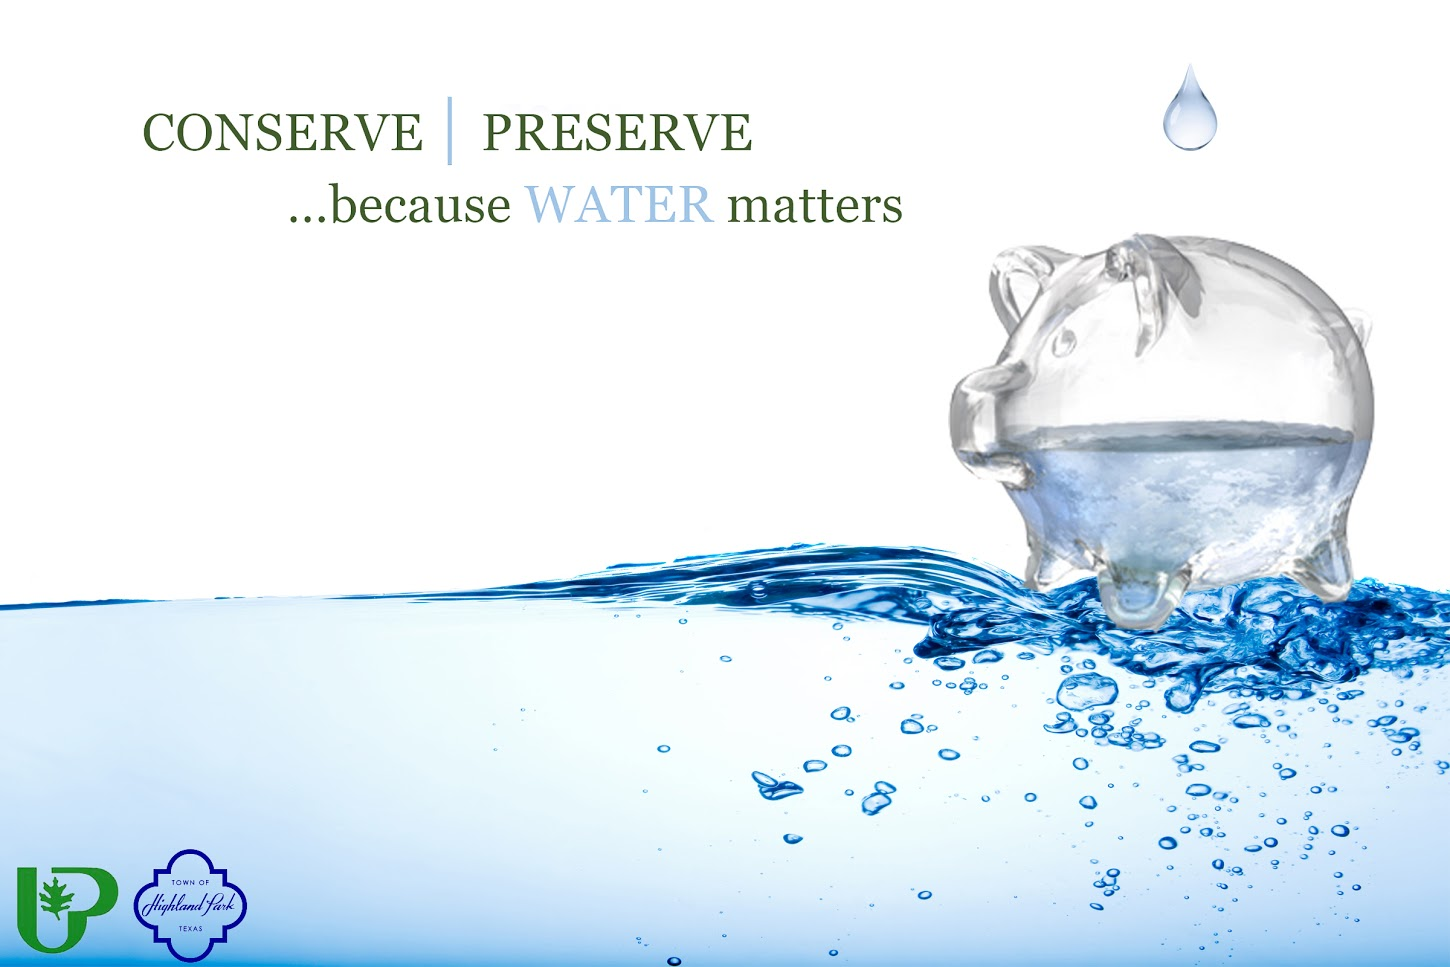 Conserve, Preserve ...because Water matters